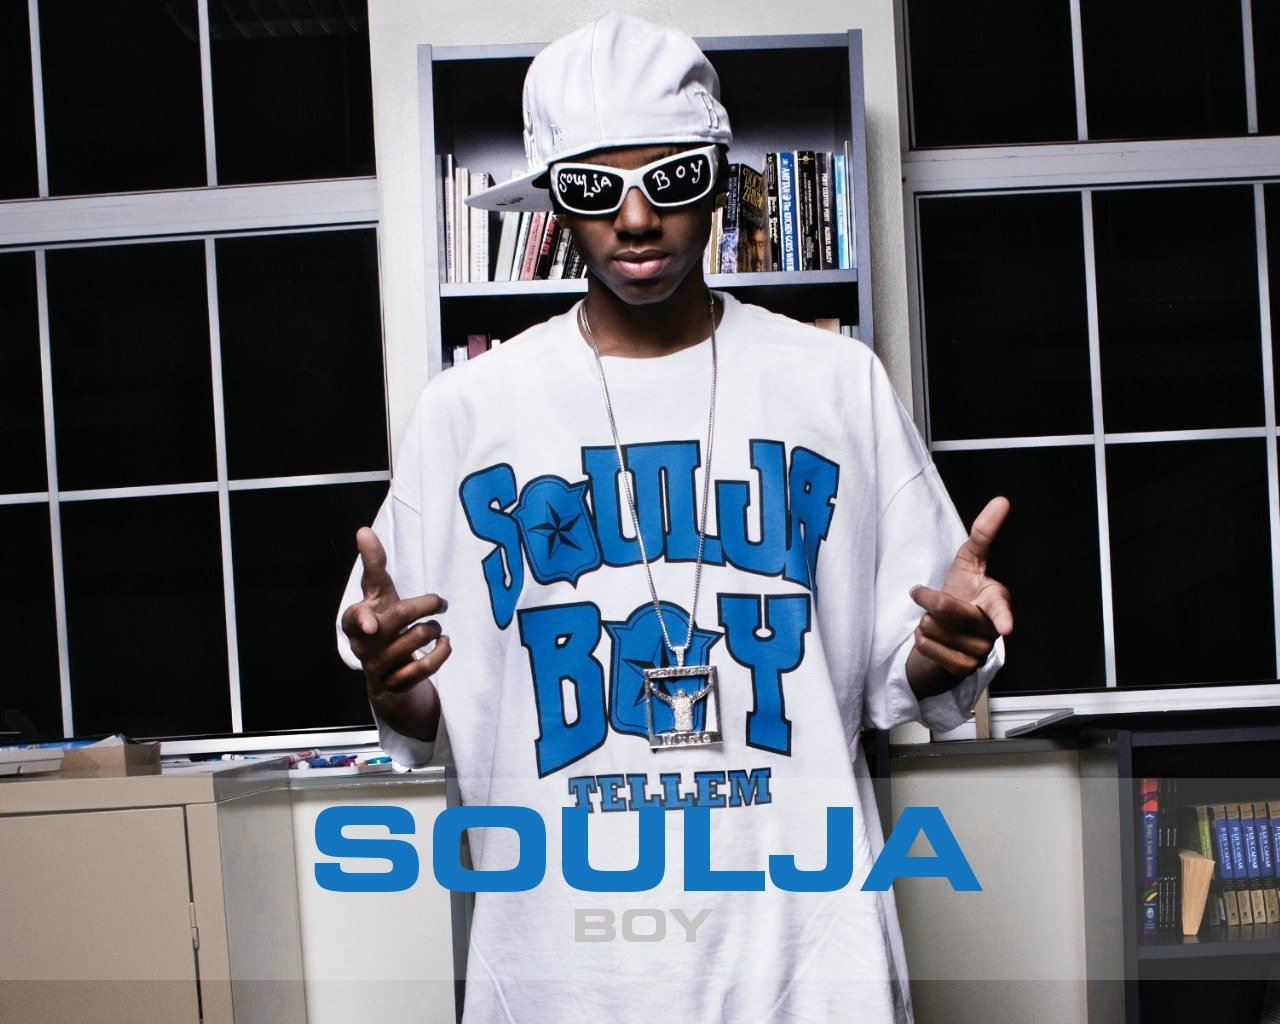 Travel Air Chennai Download Soulja Boy Wallpaper Gallery